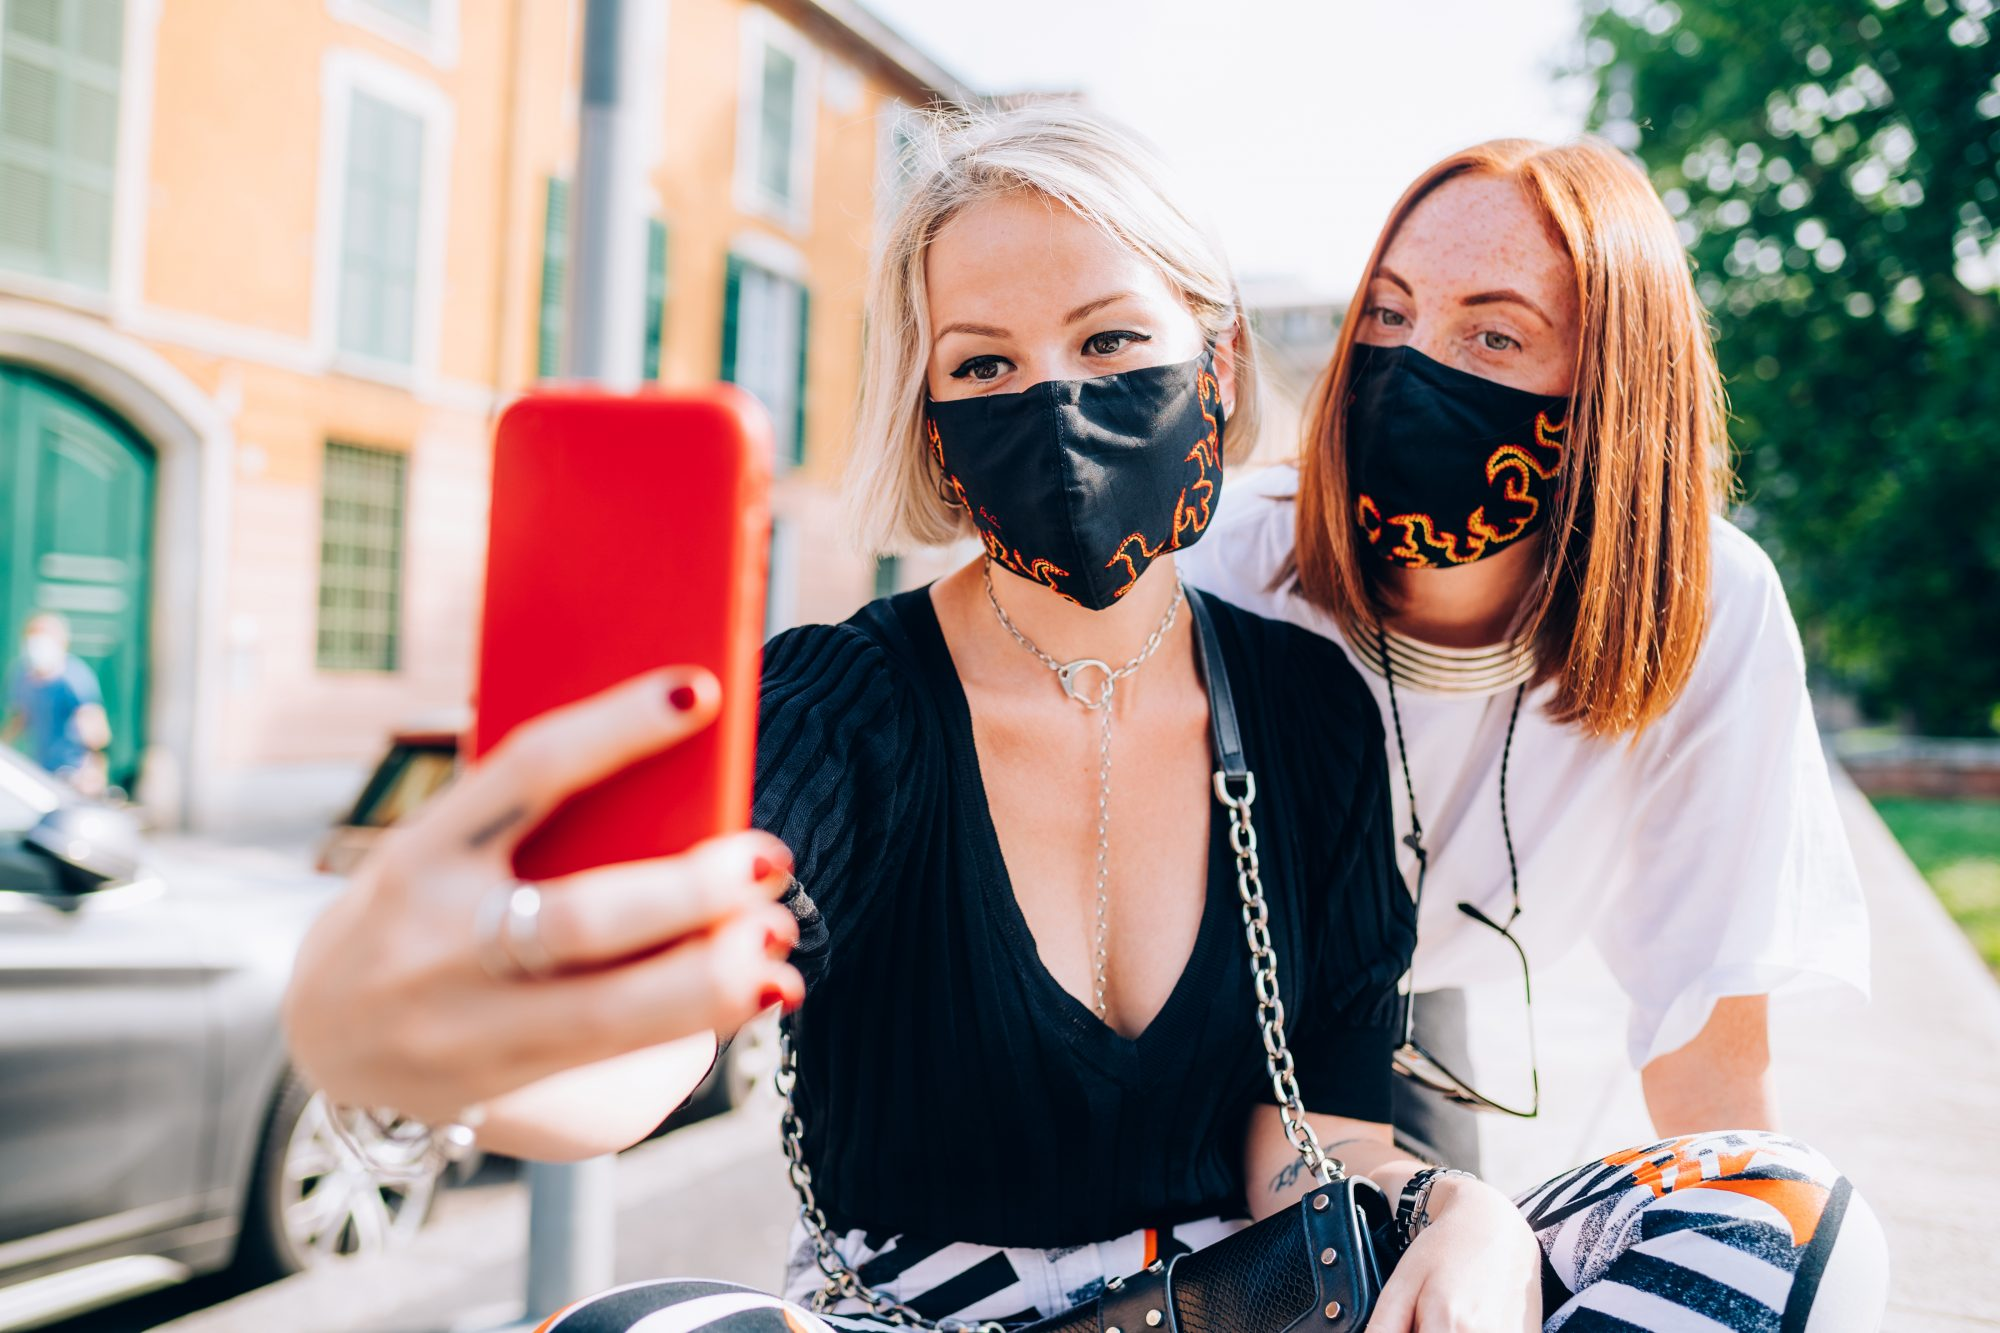 Two young women wearing face masks during Corona virus, sitting on a riverbank, taking selfie.The Best Black Friday Face Mask Deals